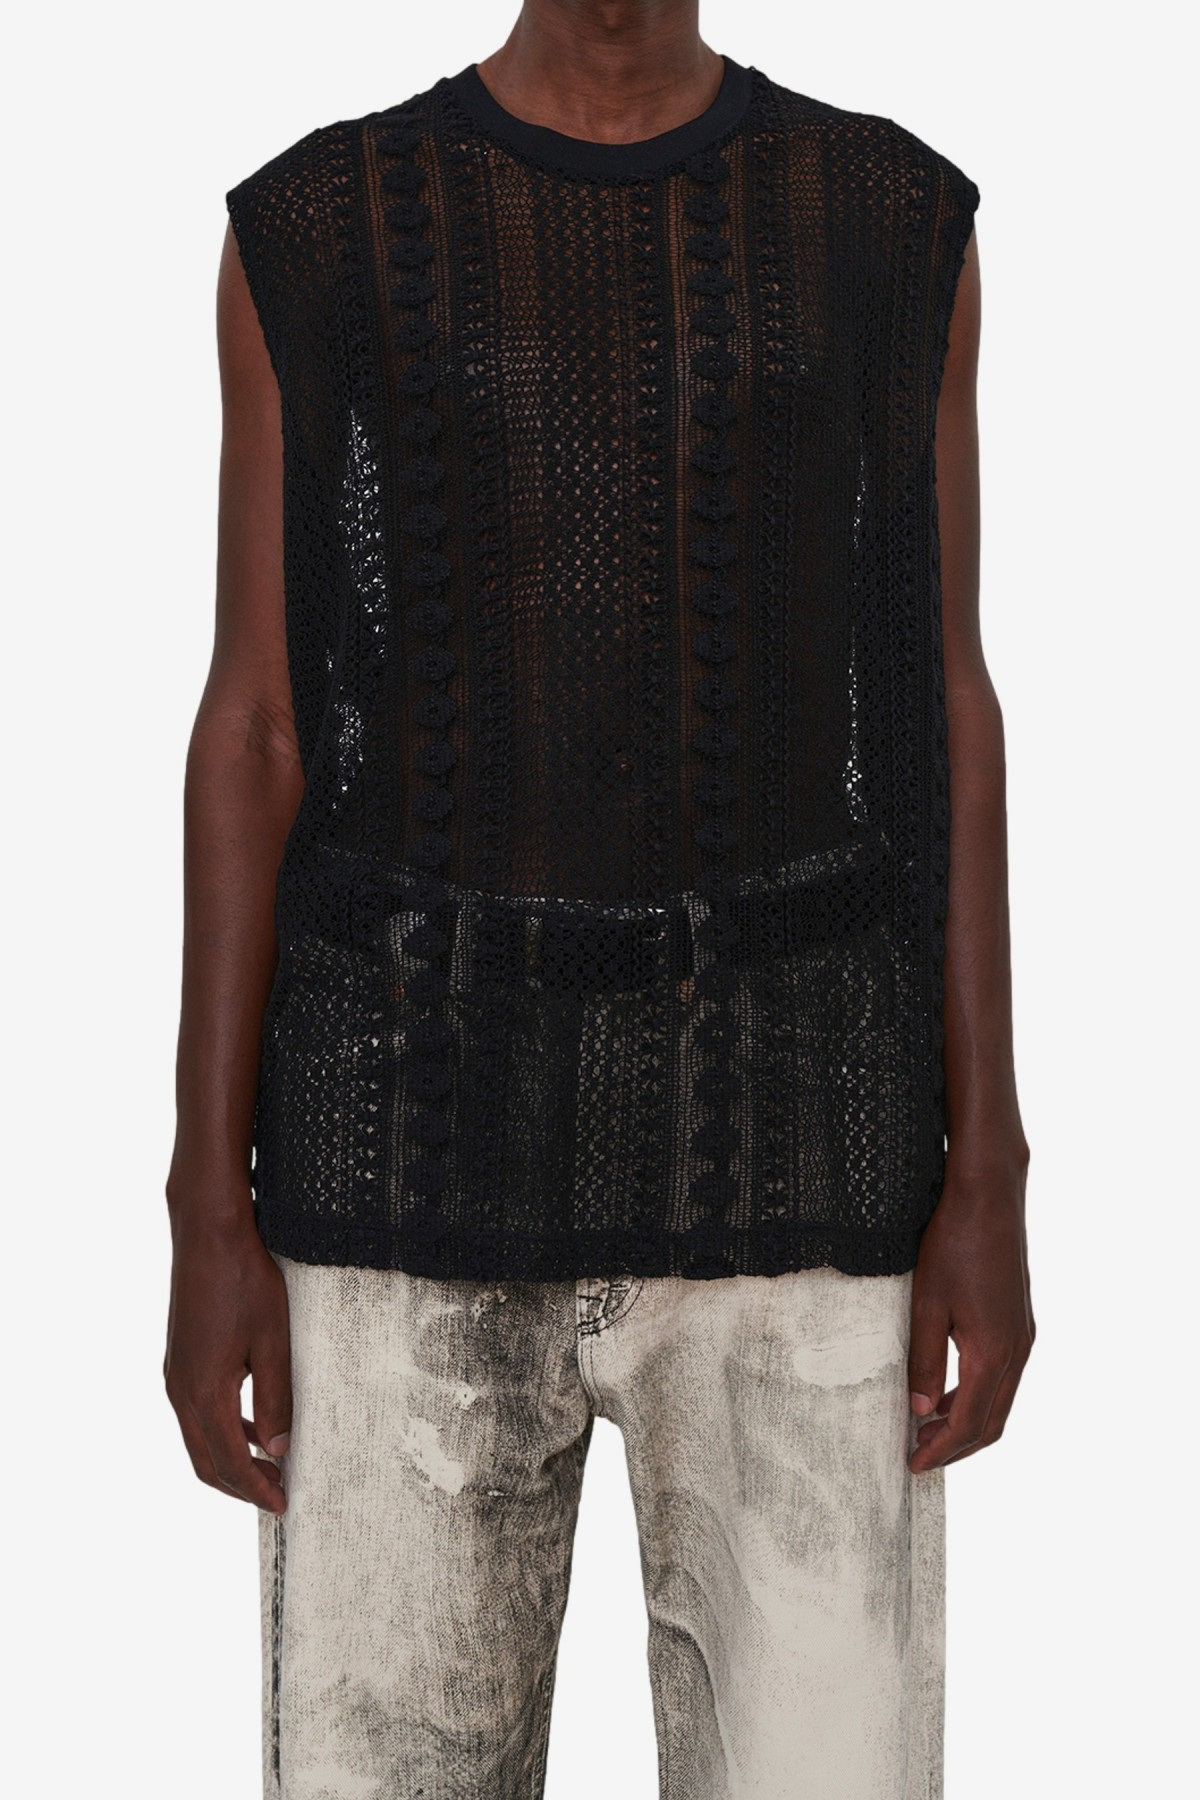 Our Legacy Box Sleeveless in Black Cotton Crochet